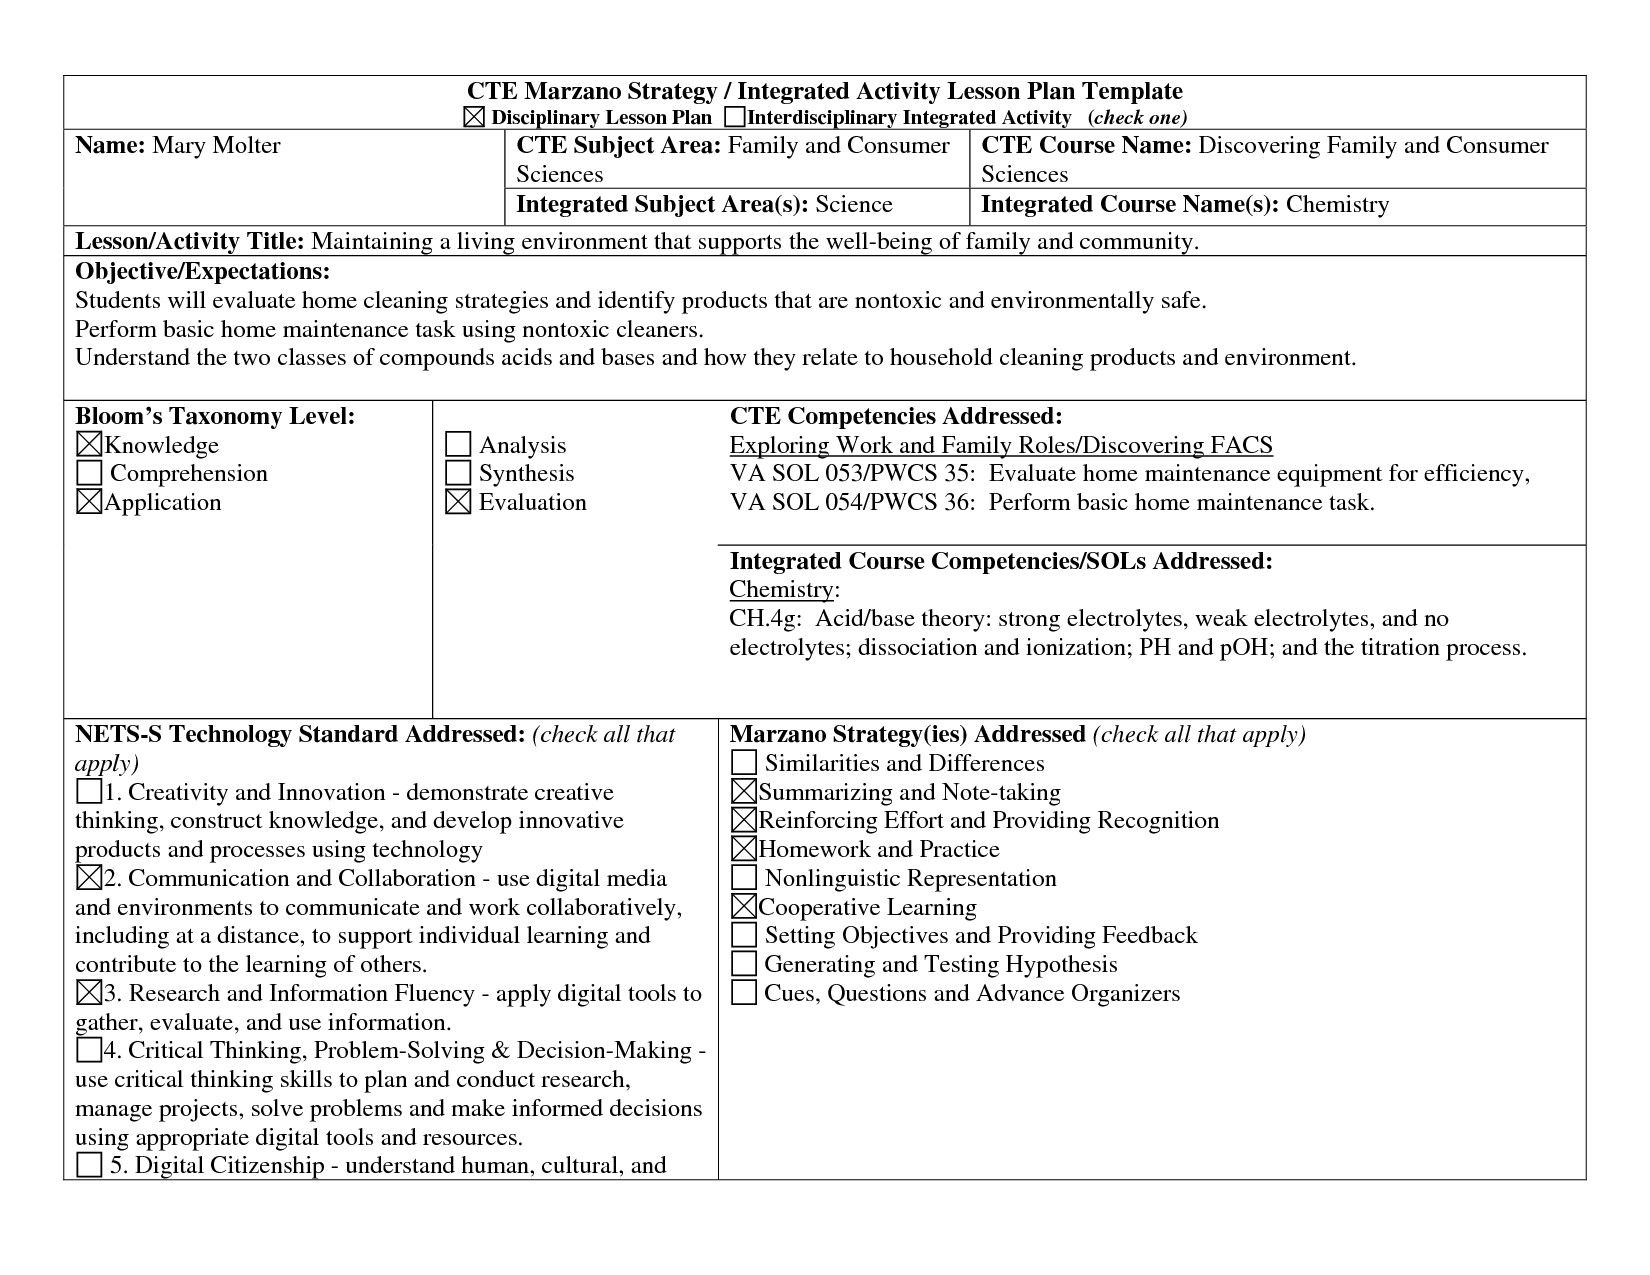 Marzano Lesson Plan Template Doc Lovely Marzano Lesson Plans Center Here You Will Find Y Lesson Plan Templates Lesson Plan Template Free Printable Lesson Plans Marzano lesson plan template pdf